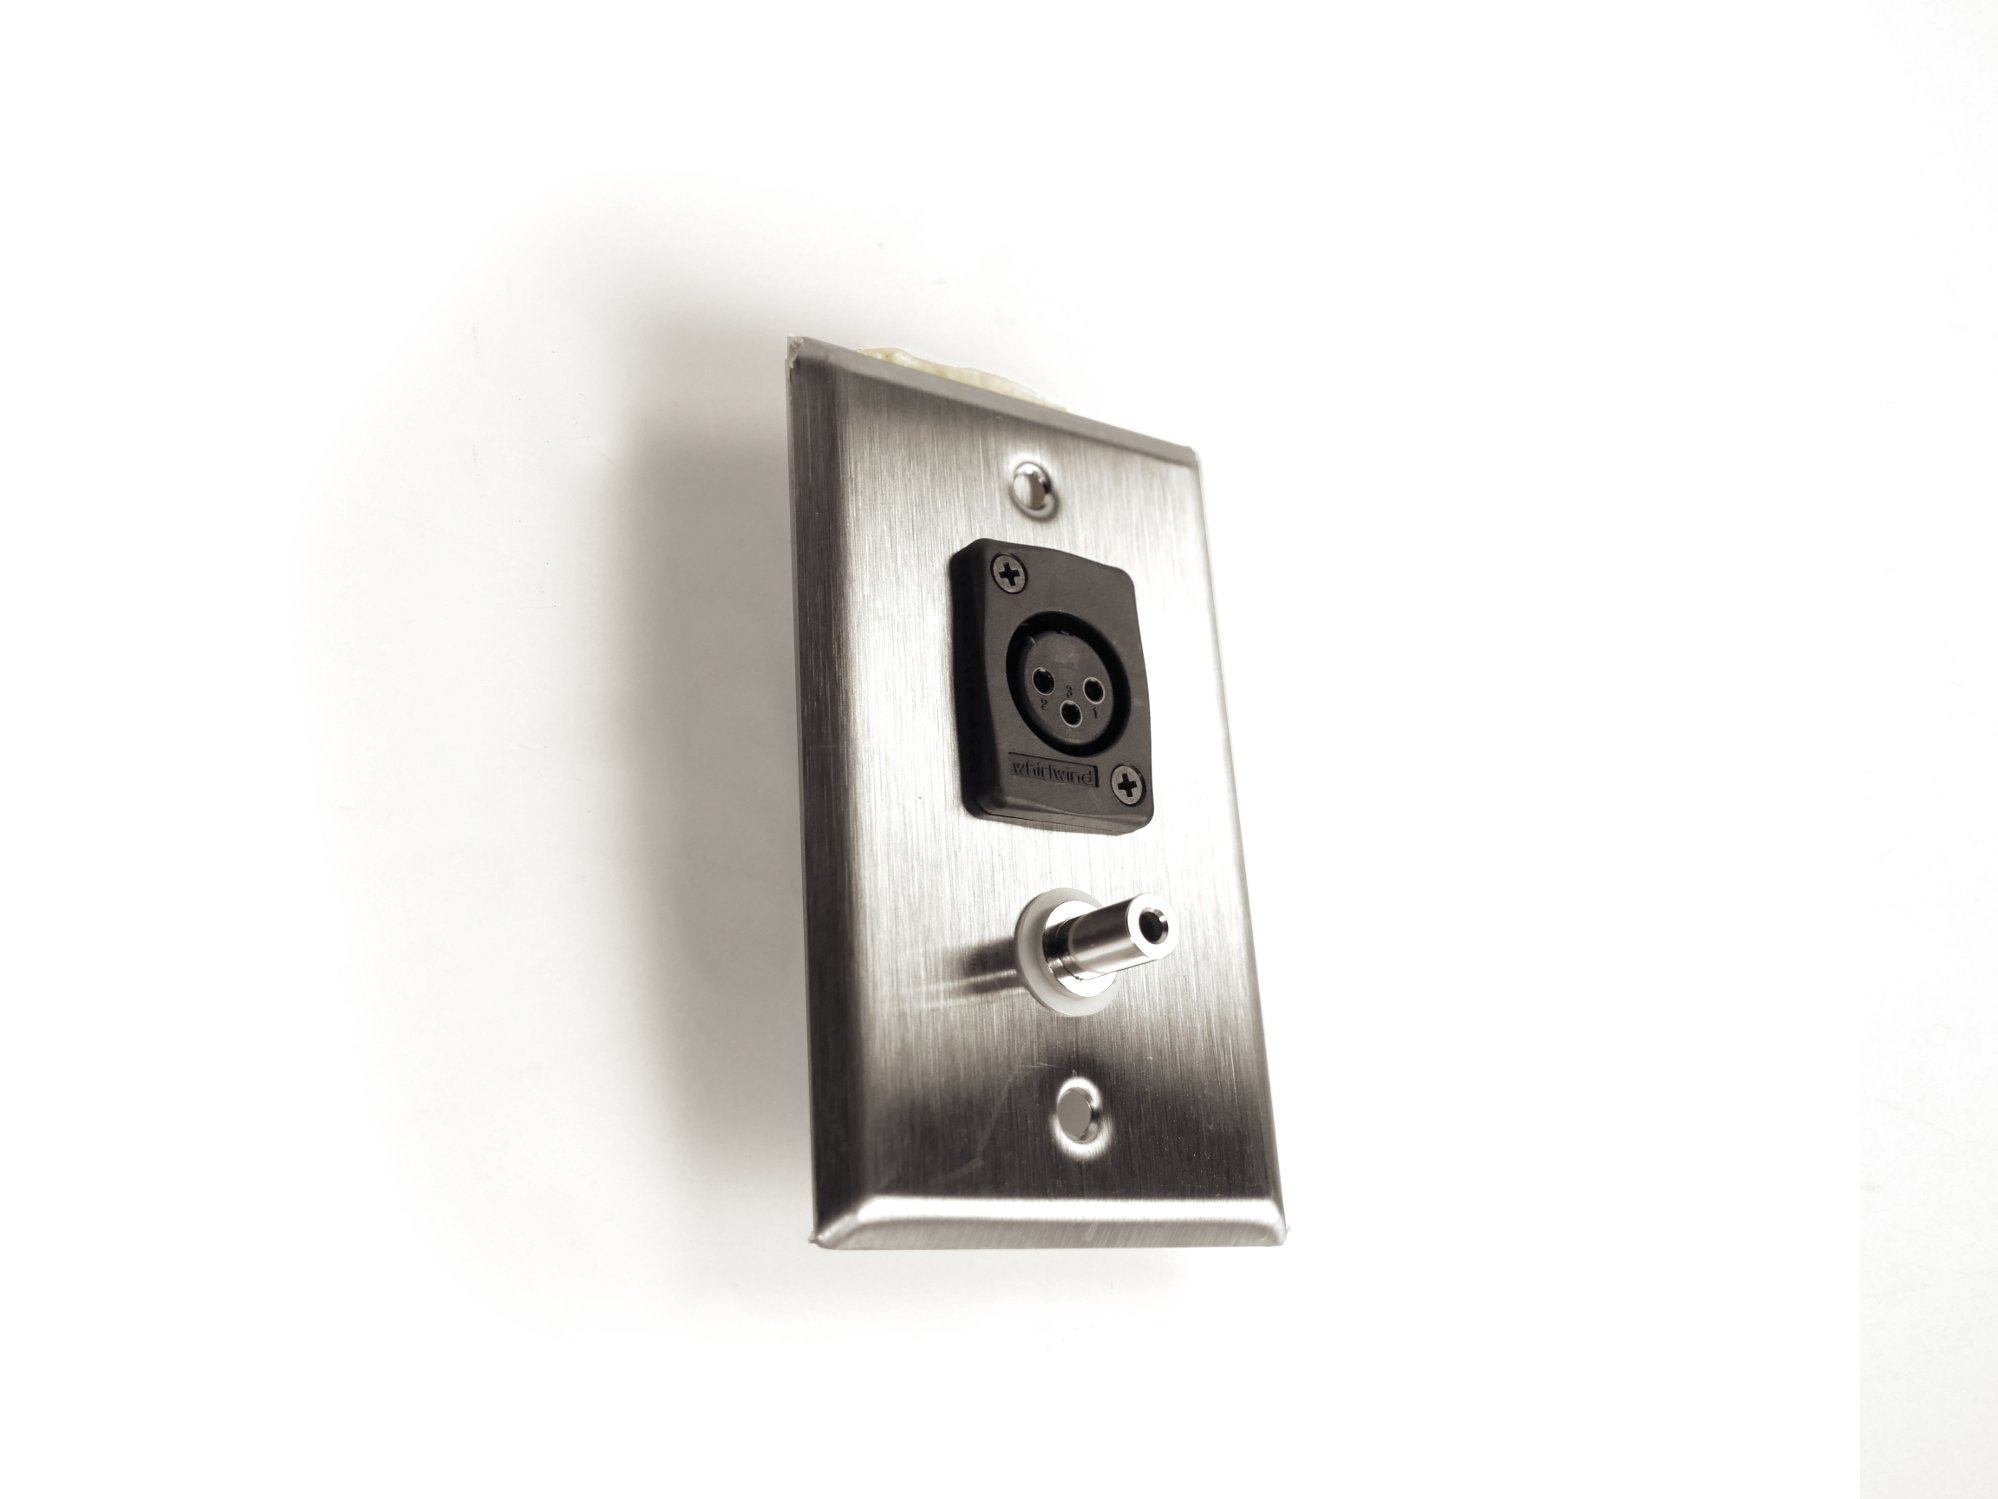 Anodized Aluminum Wallplate with XLRF & 3.5mm Connectors